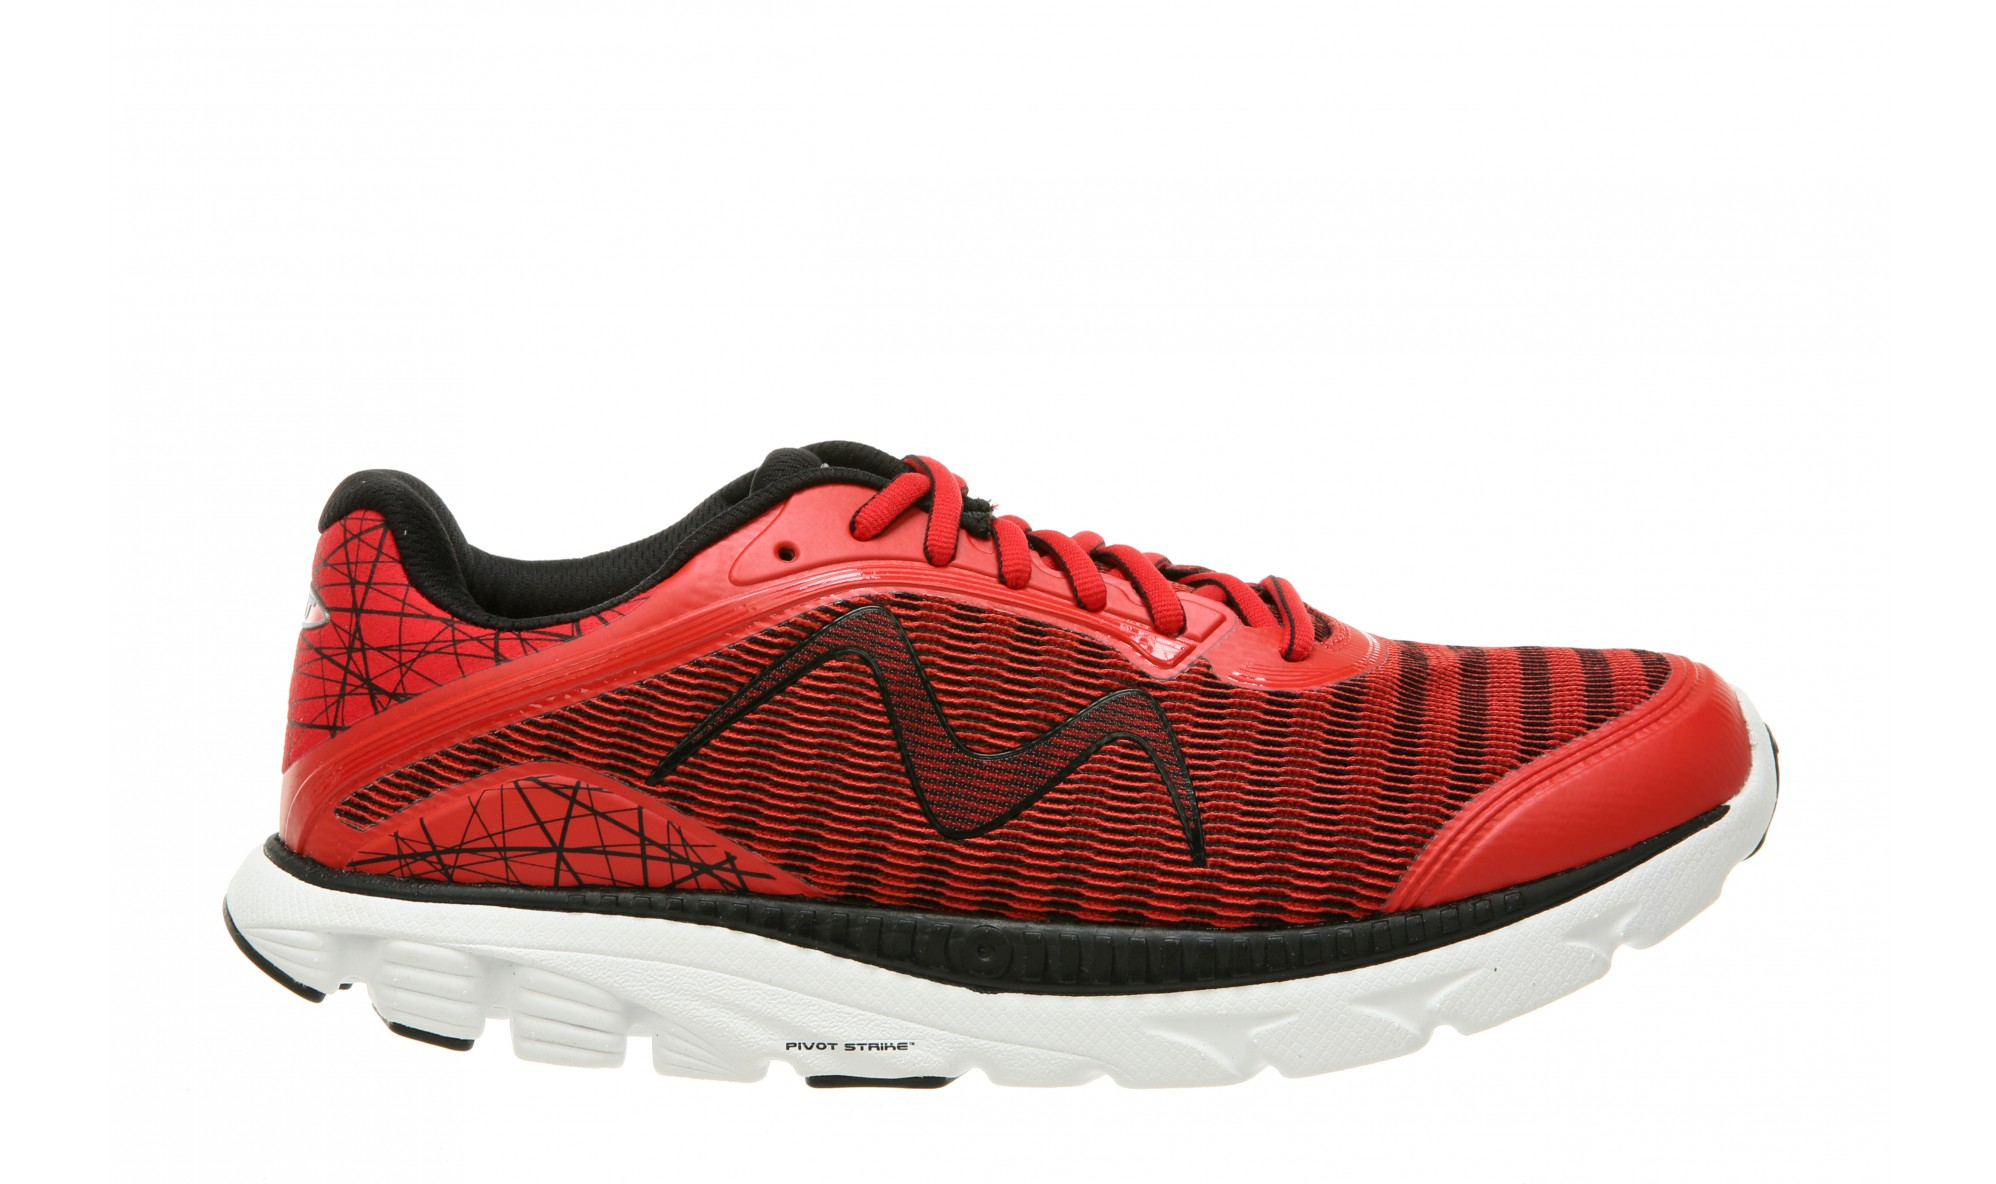 MBT Racer 18 - Men's - Red